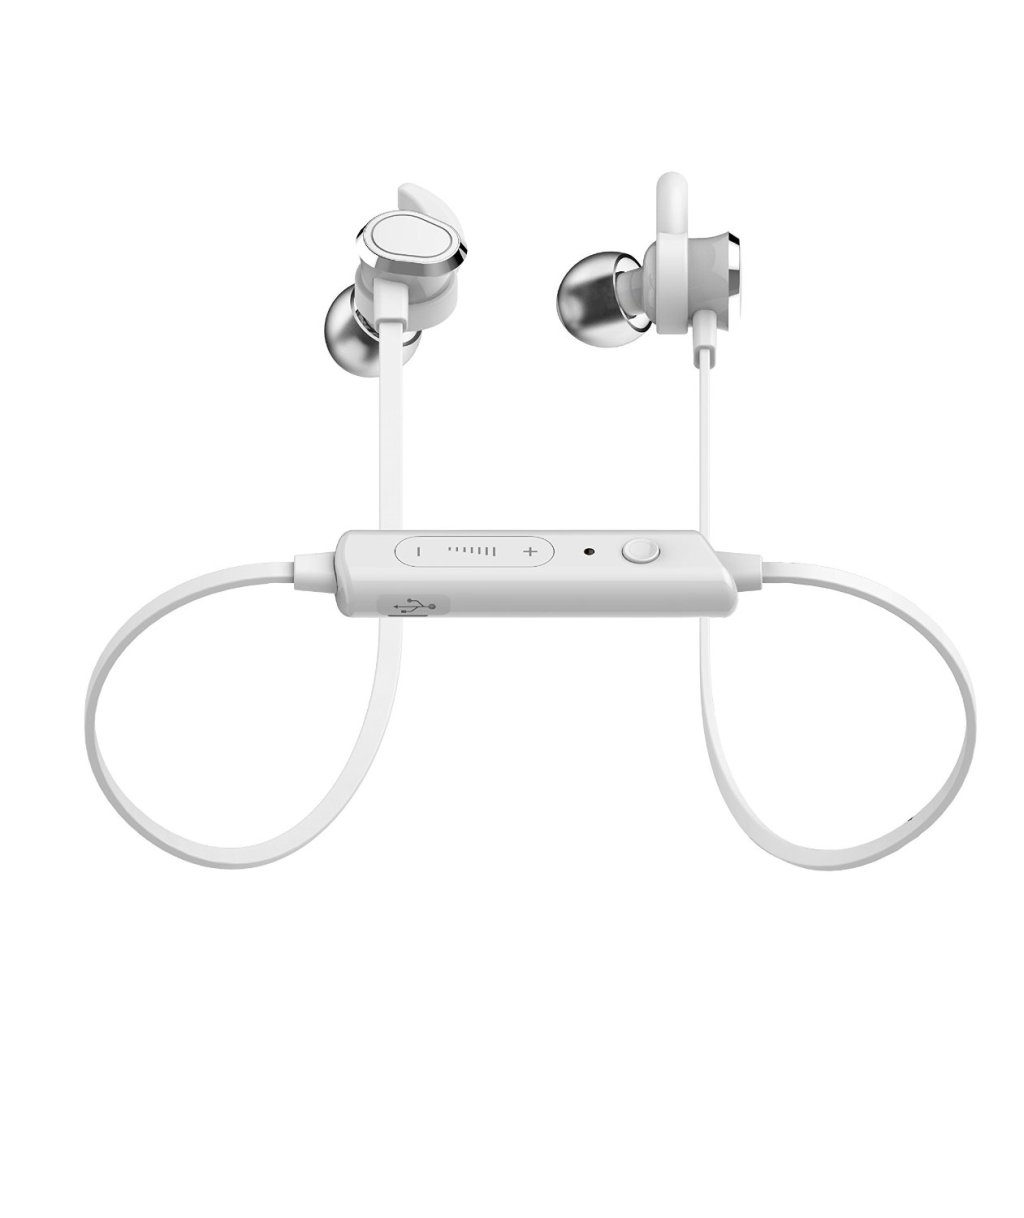 Aoodle bluetooth headphones